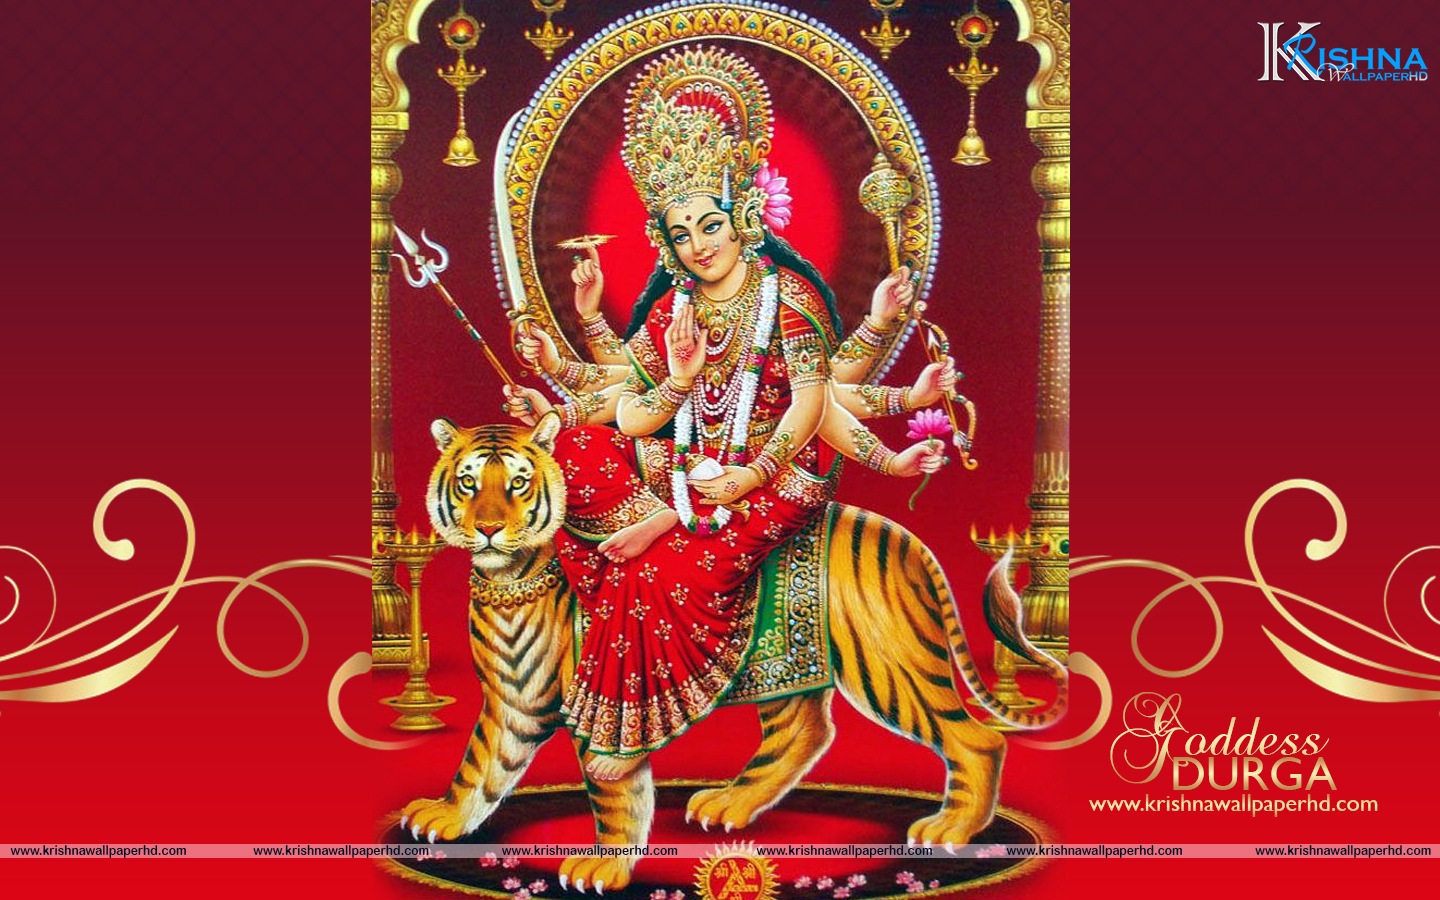 Goddess Durga Wallpaper HD